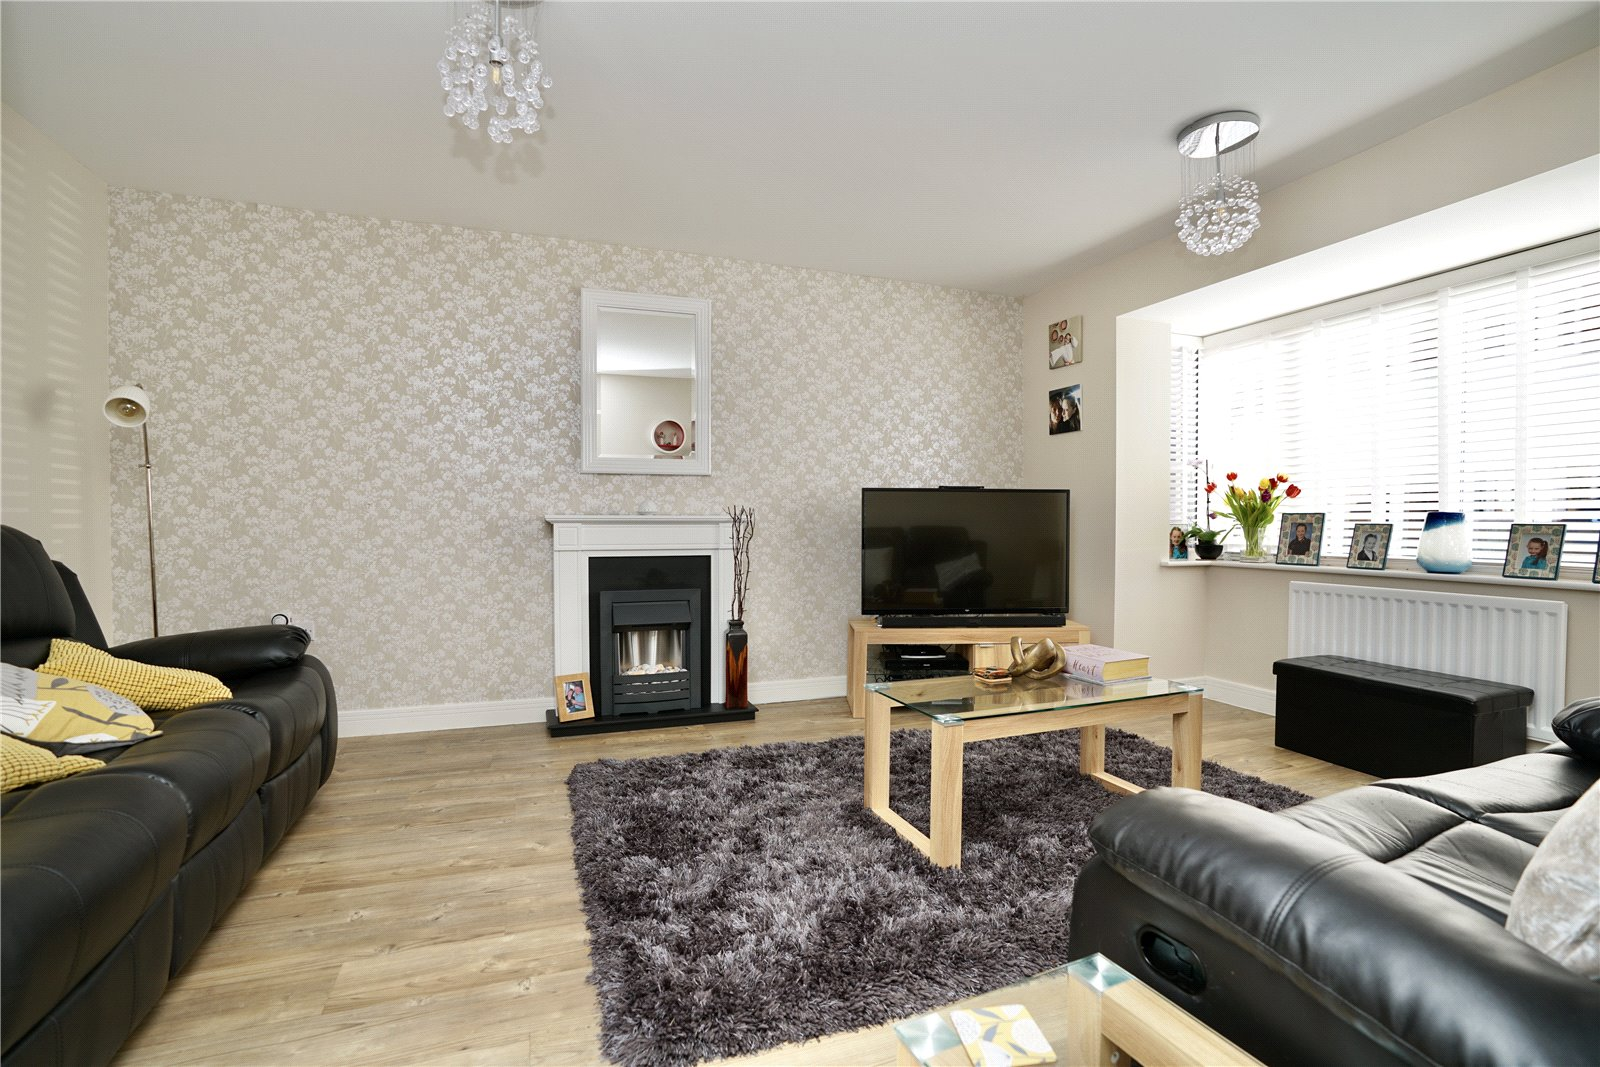 4 bed house for sale in Whinfell Close, Eaton Socon 5